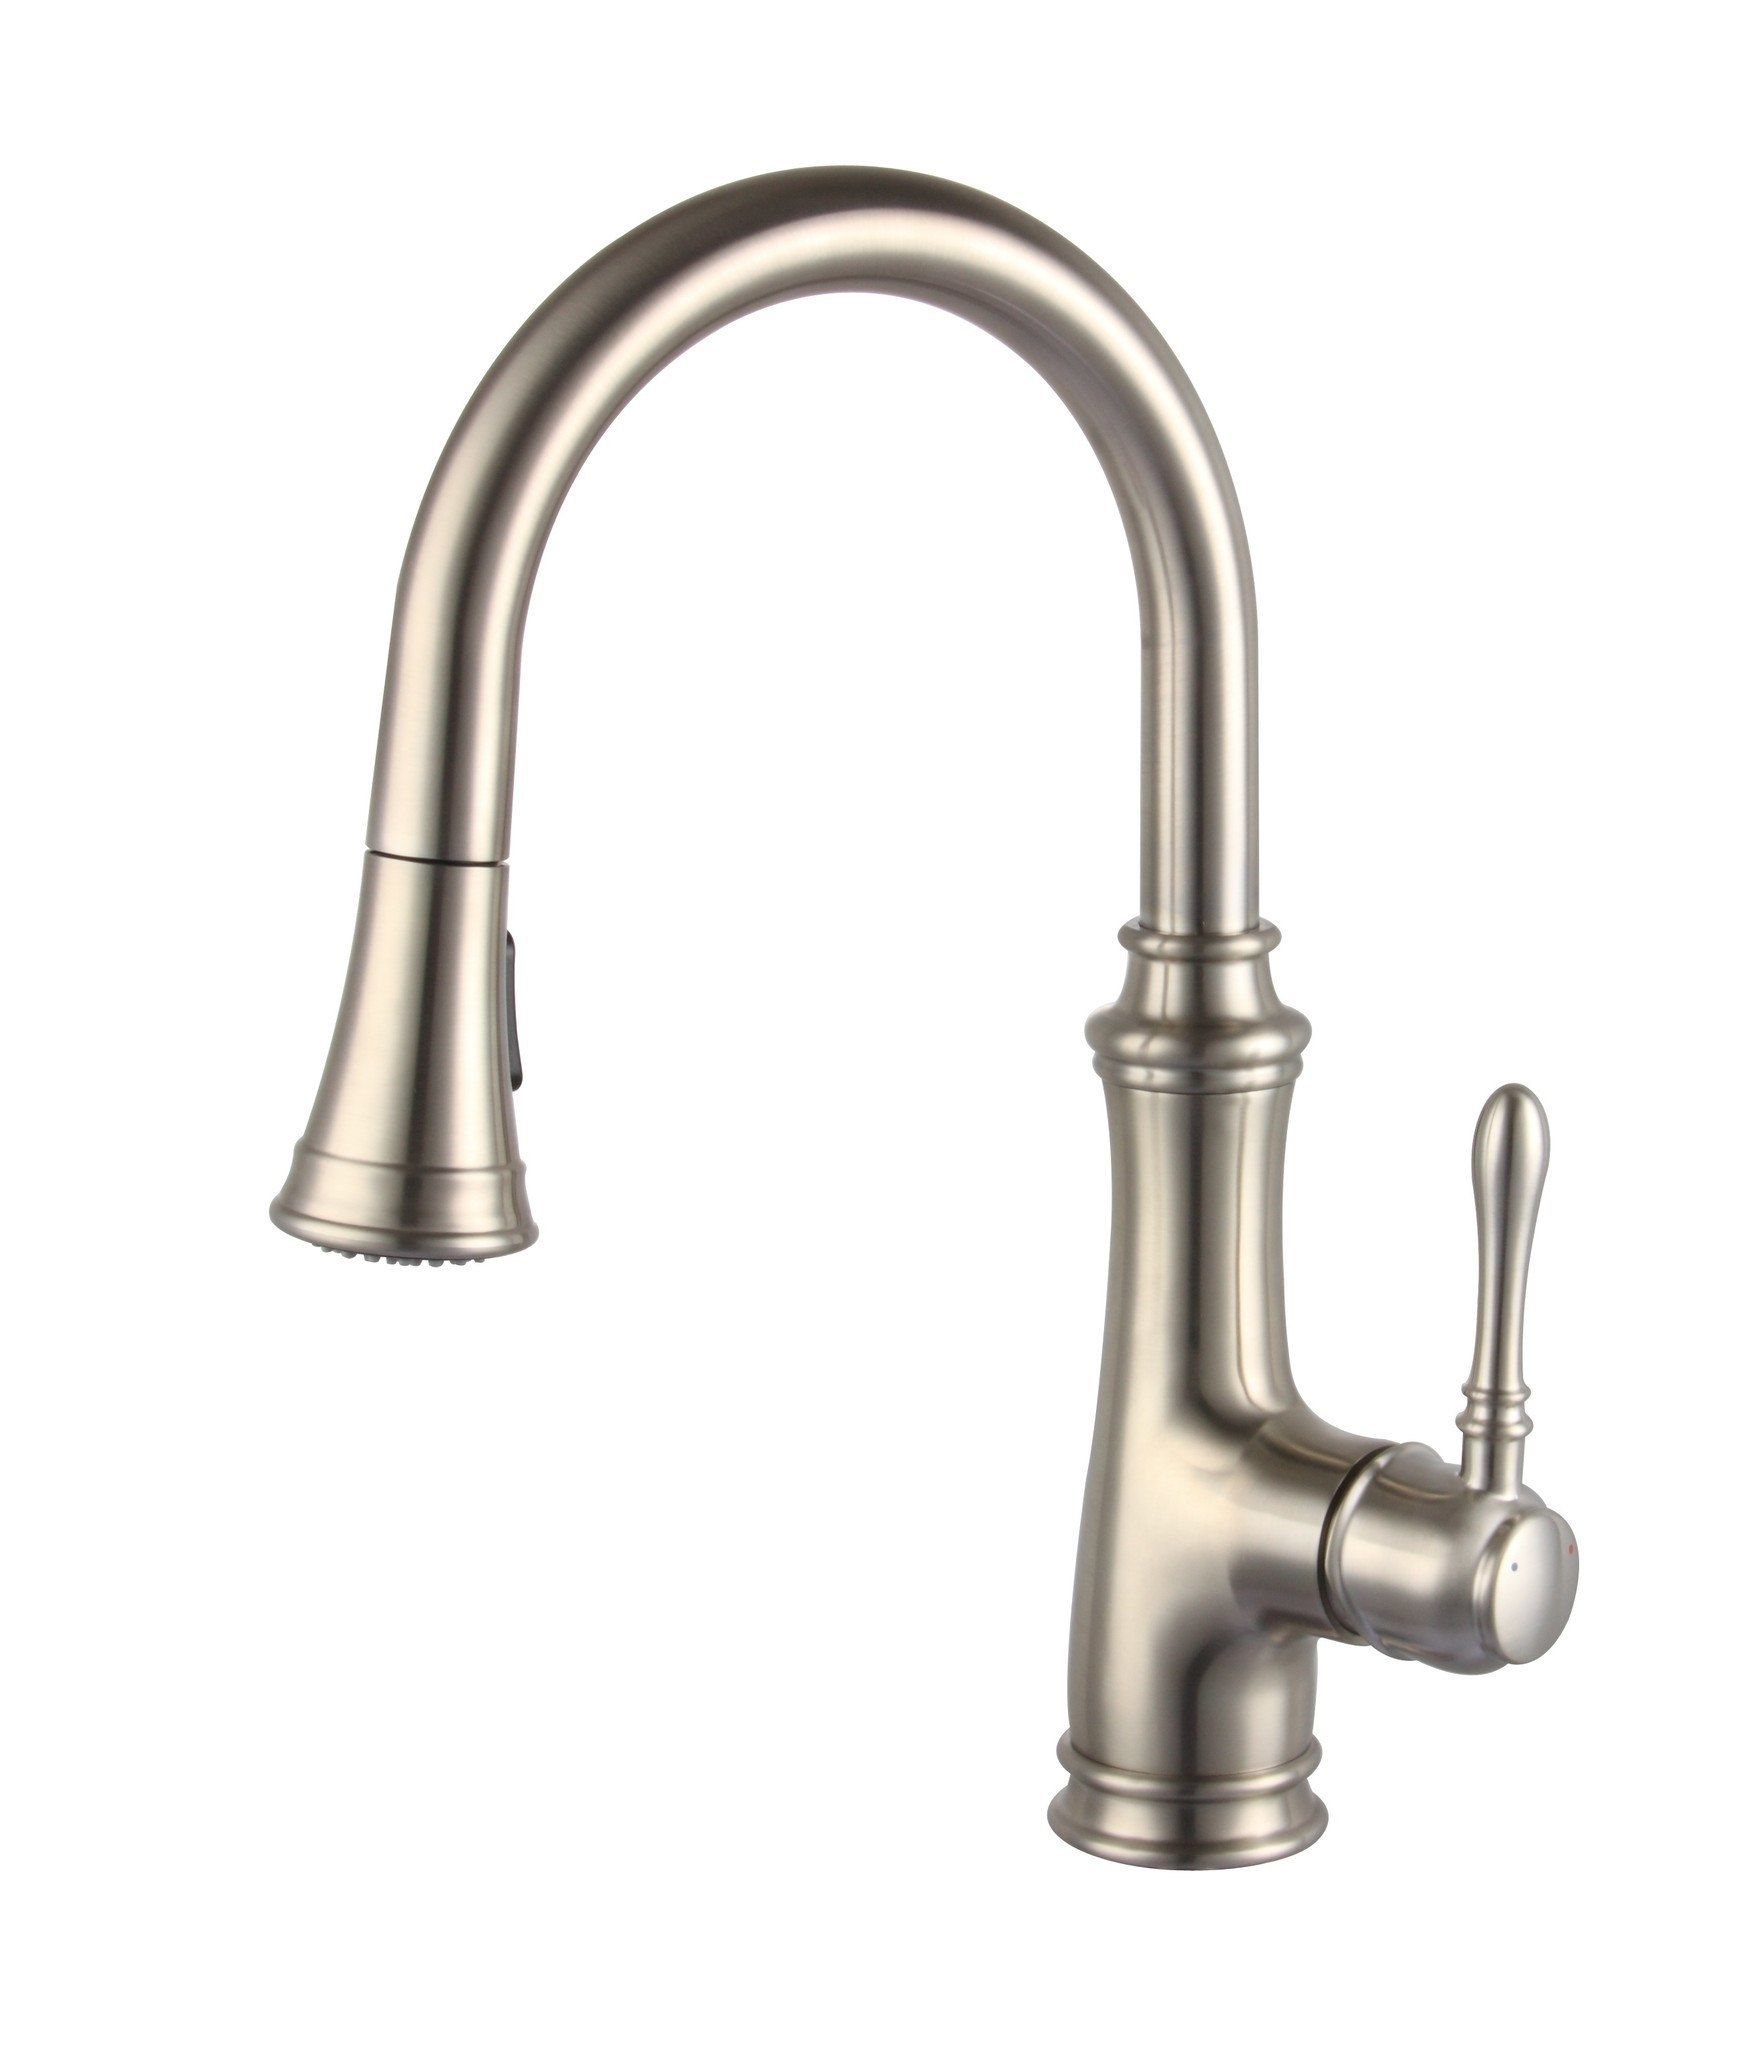 Delta Brushed Nickel Pull Kitchen Faucet Brushed Nickel Kitchen Faucet Kitchen Faucet Delta Kitchen Faucet